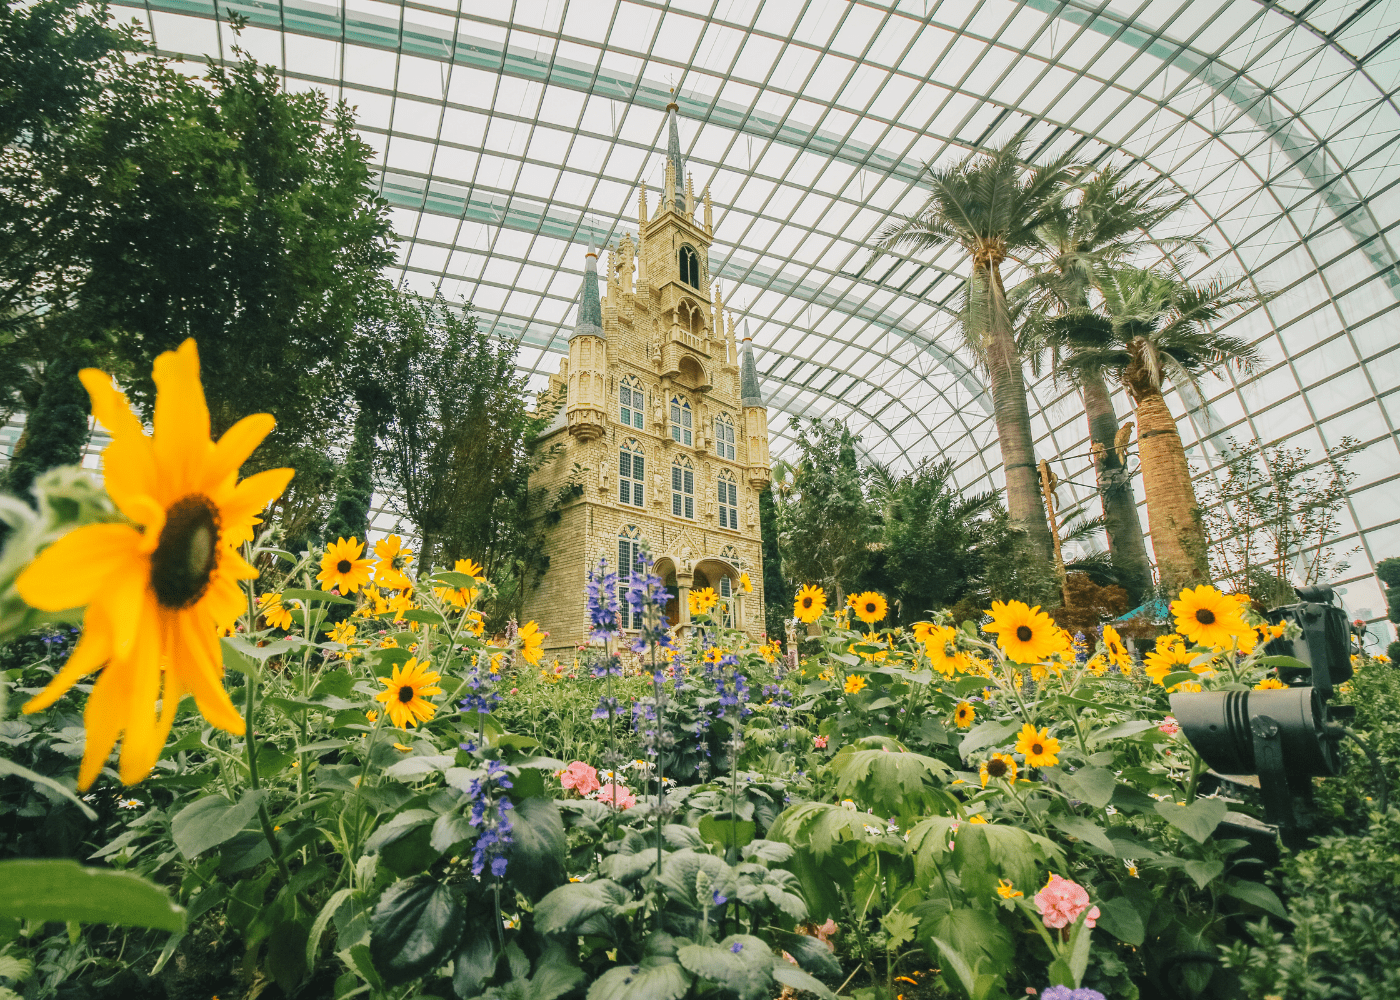 gardens-by-the-bay-flower-dome-phase-2-singapore